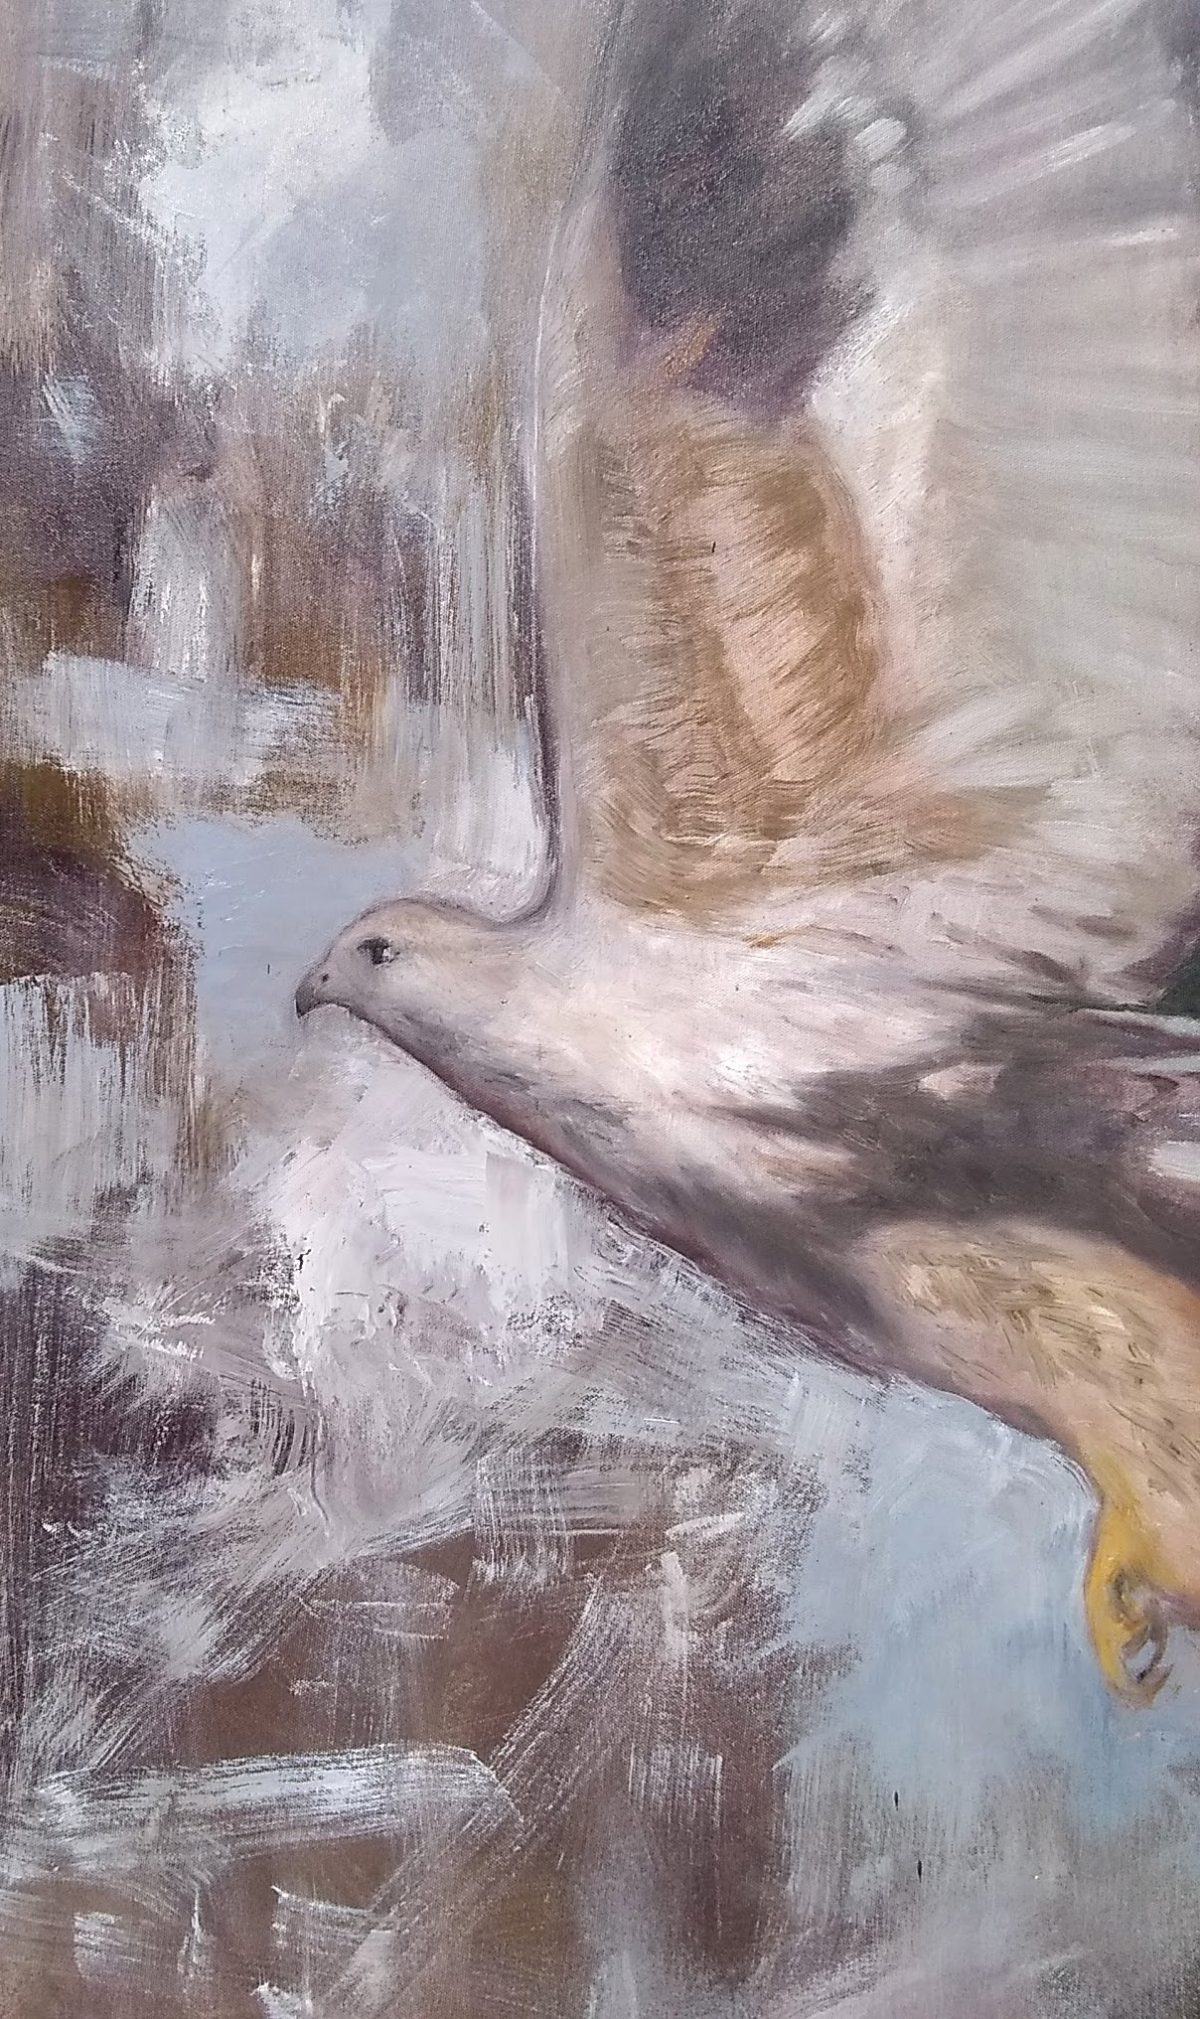 Snap Detail 2 Oil on Canvas 24x30 Rebecca King Hawkinson